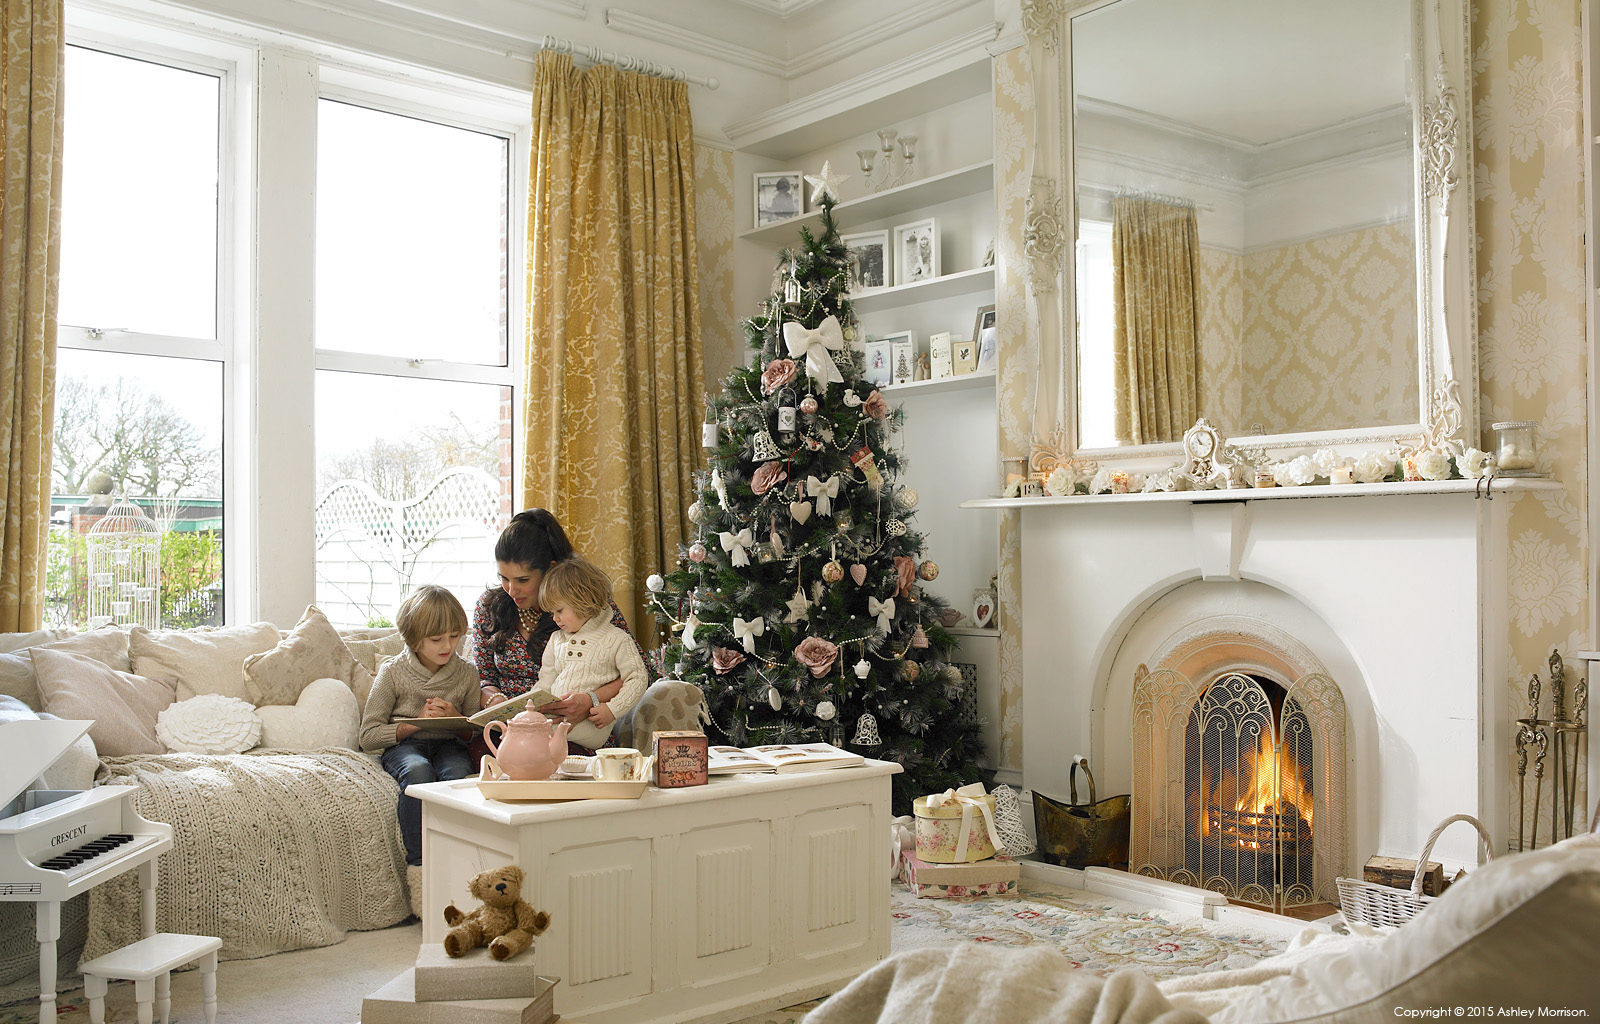 Amanda Cunningham with her two childern in the sitting room of their double fronted mid terrace house in Belfast at Christmas.